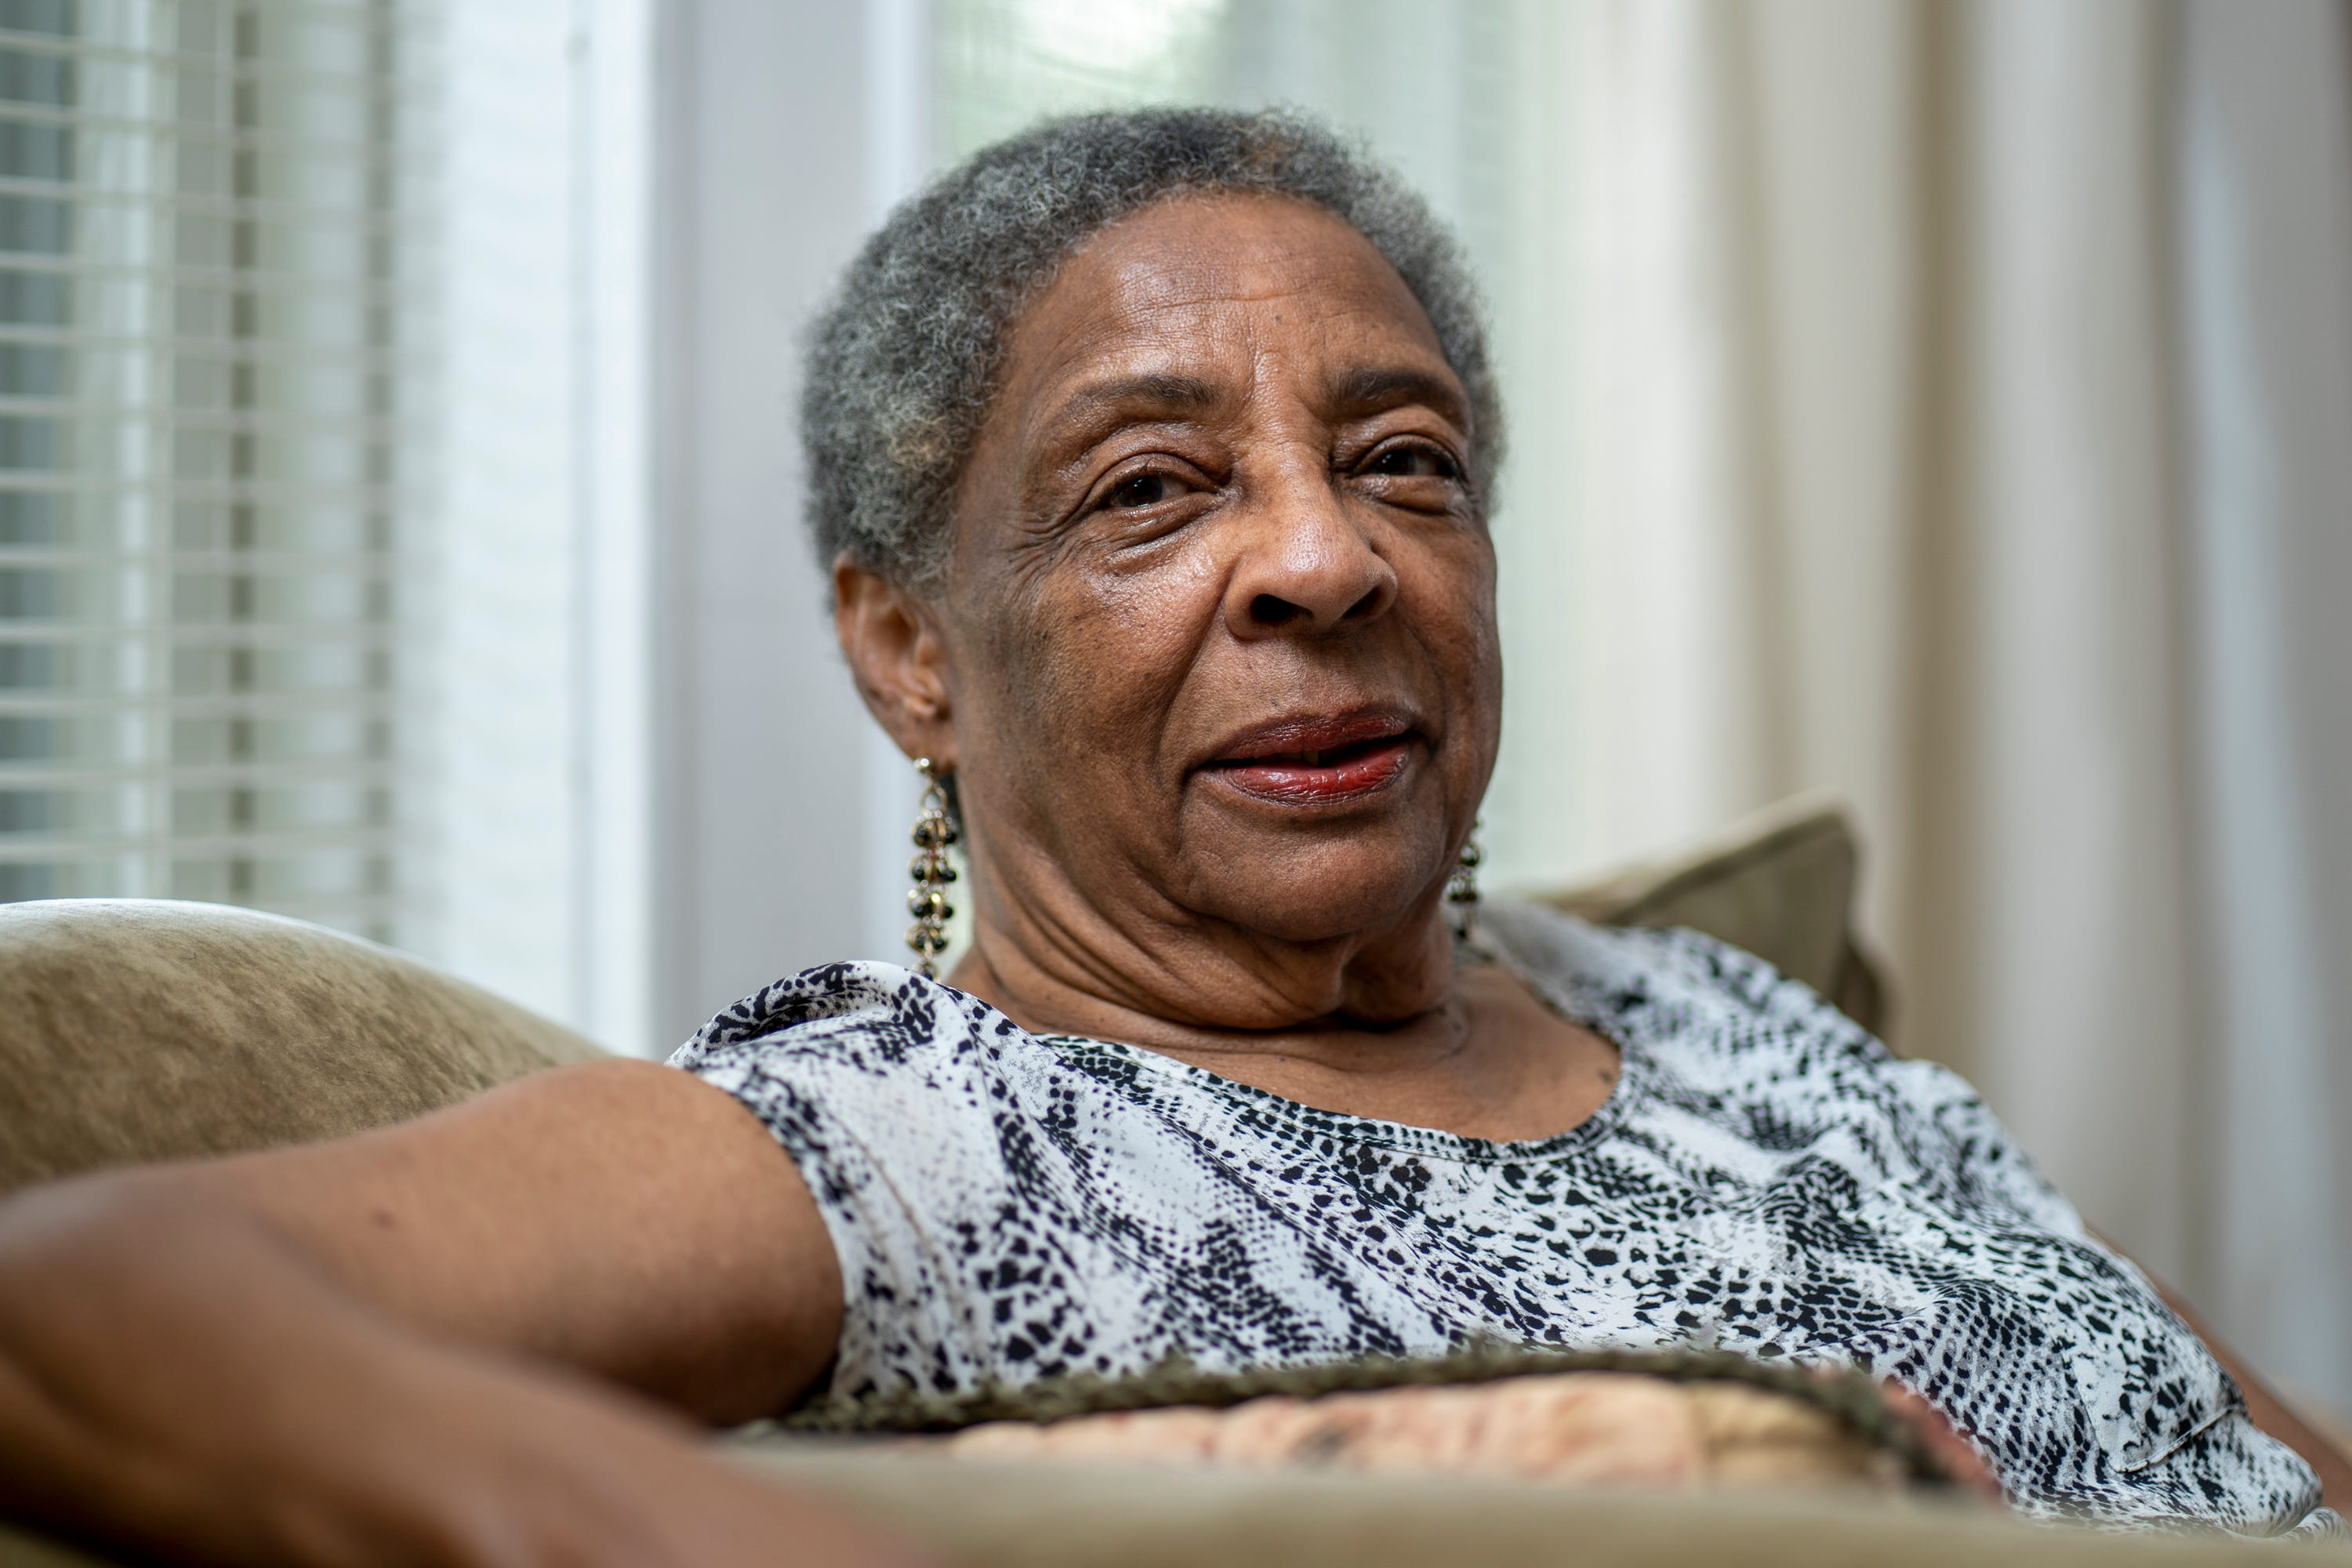 """August 1, 2021; St. Louis, Mo., USA; August 1, 2021; St. Louis, Mo.; Ethel Sawyer Adolphe, one of the Tougaloo Nine students who demonstrated in the sit-in at Jackson Municipal Library, sits for a portrait in her living room.On March 27, 1961, nine Black college students sat at a table in the """"whites only'' public library in Jackson, Mississippi. They were quickly arrested, sparking a campaign that would energize the community and students at other black colleges in Mississippi to hold prayer vigils, boycotts and marches against segregation. Experts said the effort would also help mobilize young activists in other states.. Mandatory Credit: Jasper Colt-USA TODAY ORG XMIT: USAT-458442 [Via MerlinFTP Drop]"""